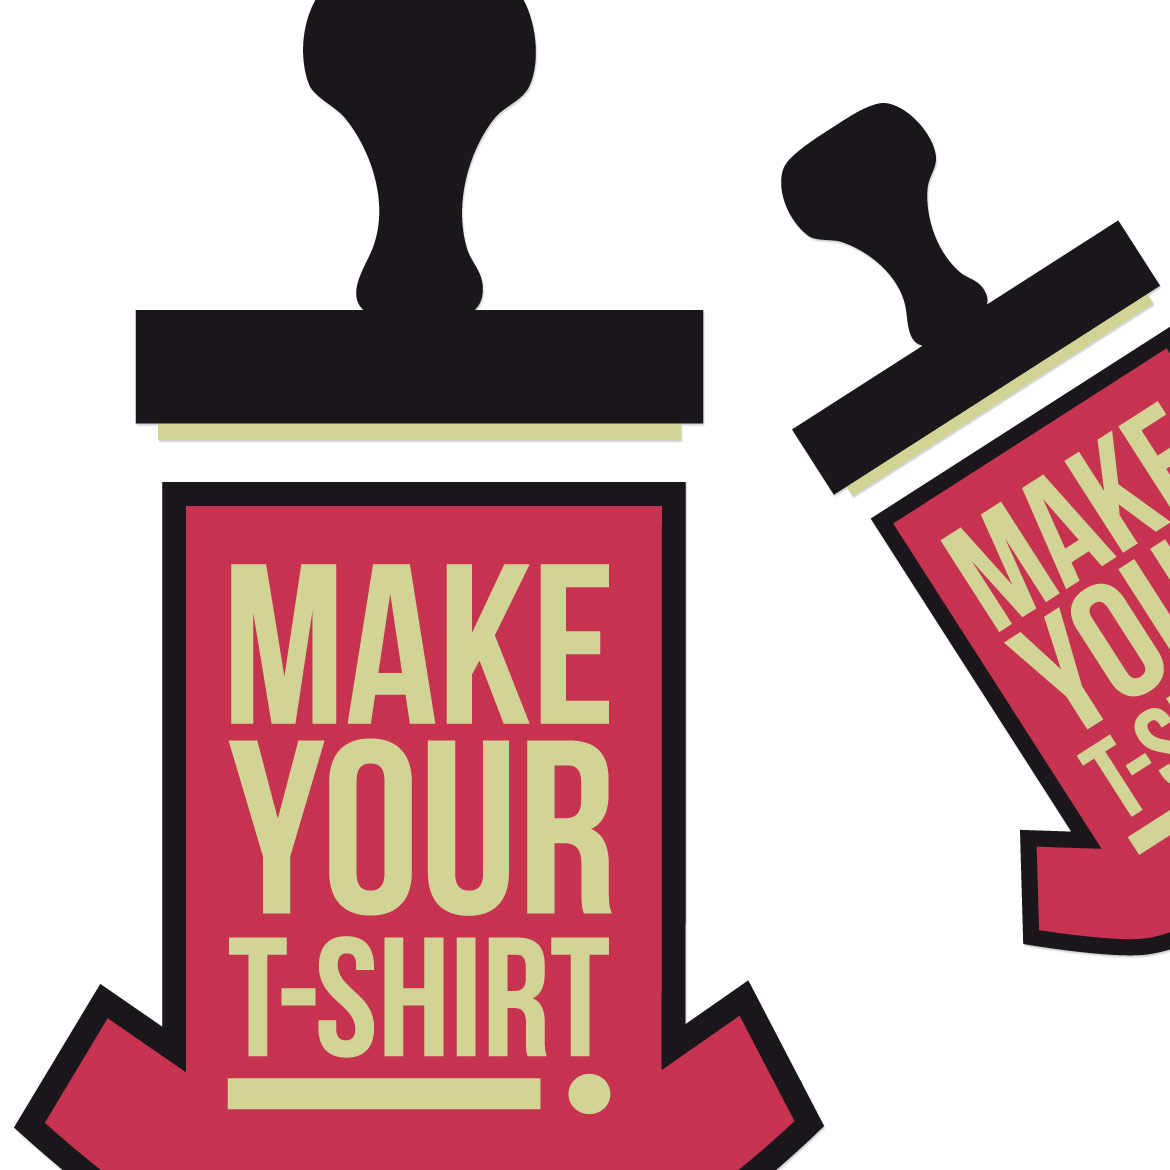 """Make your t-shirt"" Easy&Co."